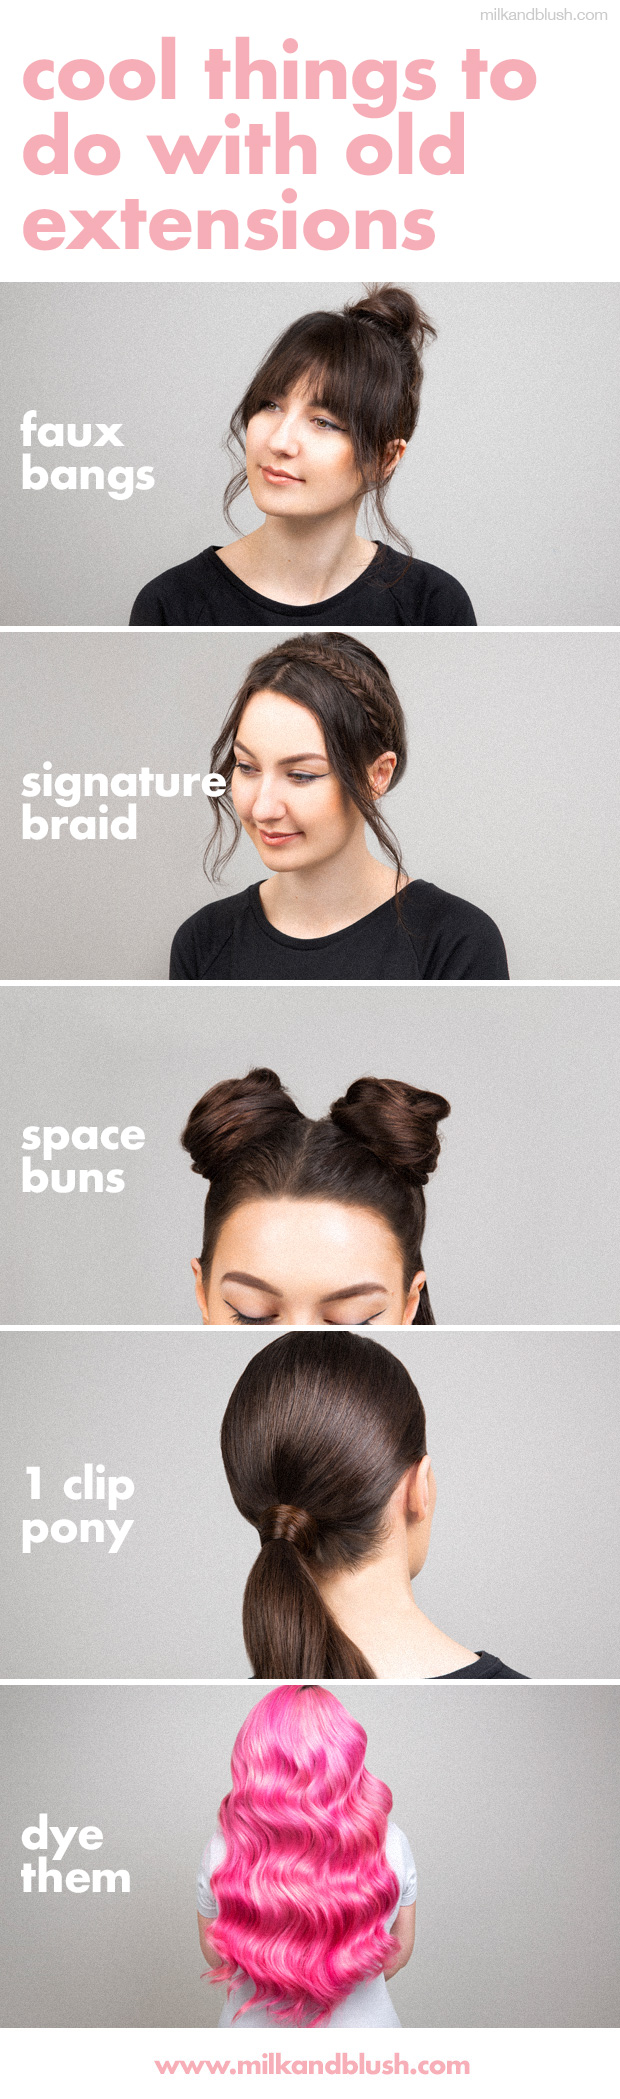 https://www.milkandblush.com/blog/5-cool-things-you-can-do-with-your-old-extensions